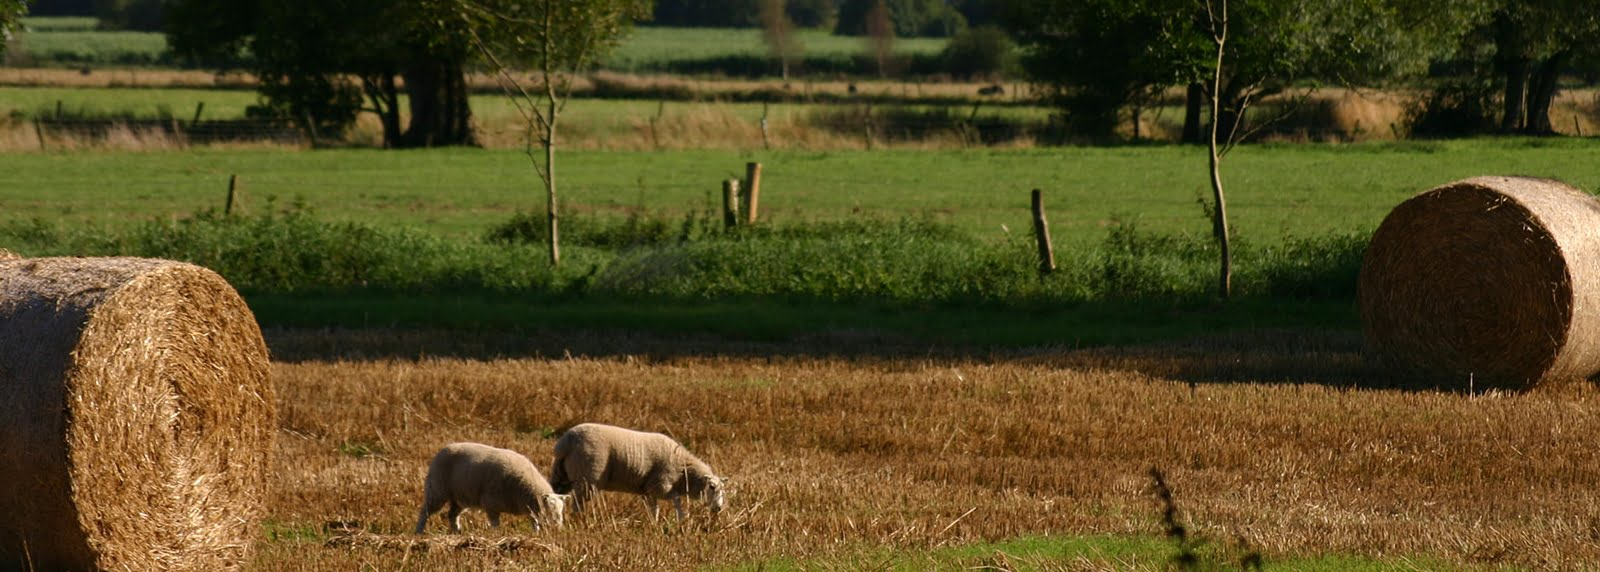 Download a copy of the 'Explore the Weald Moors' guide